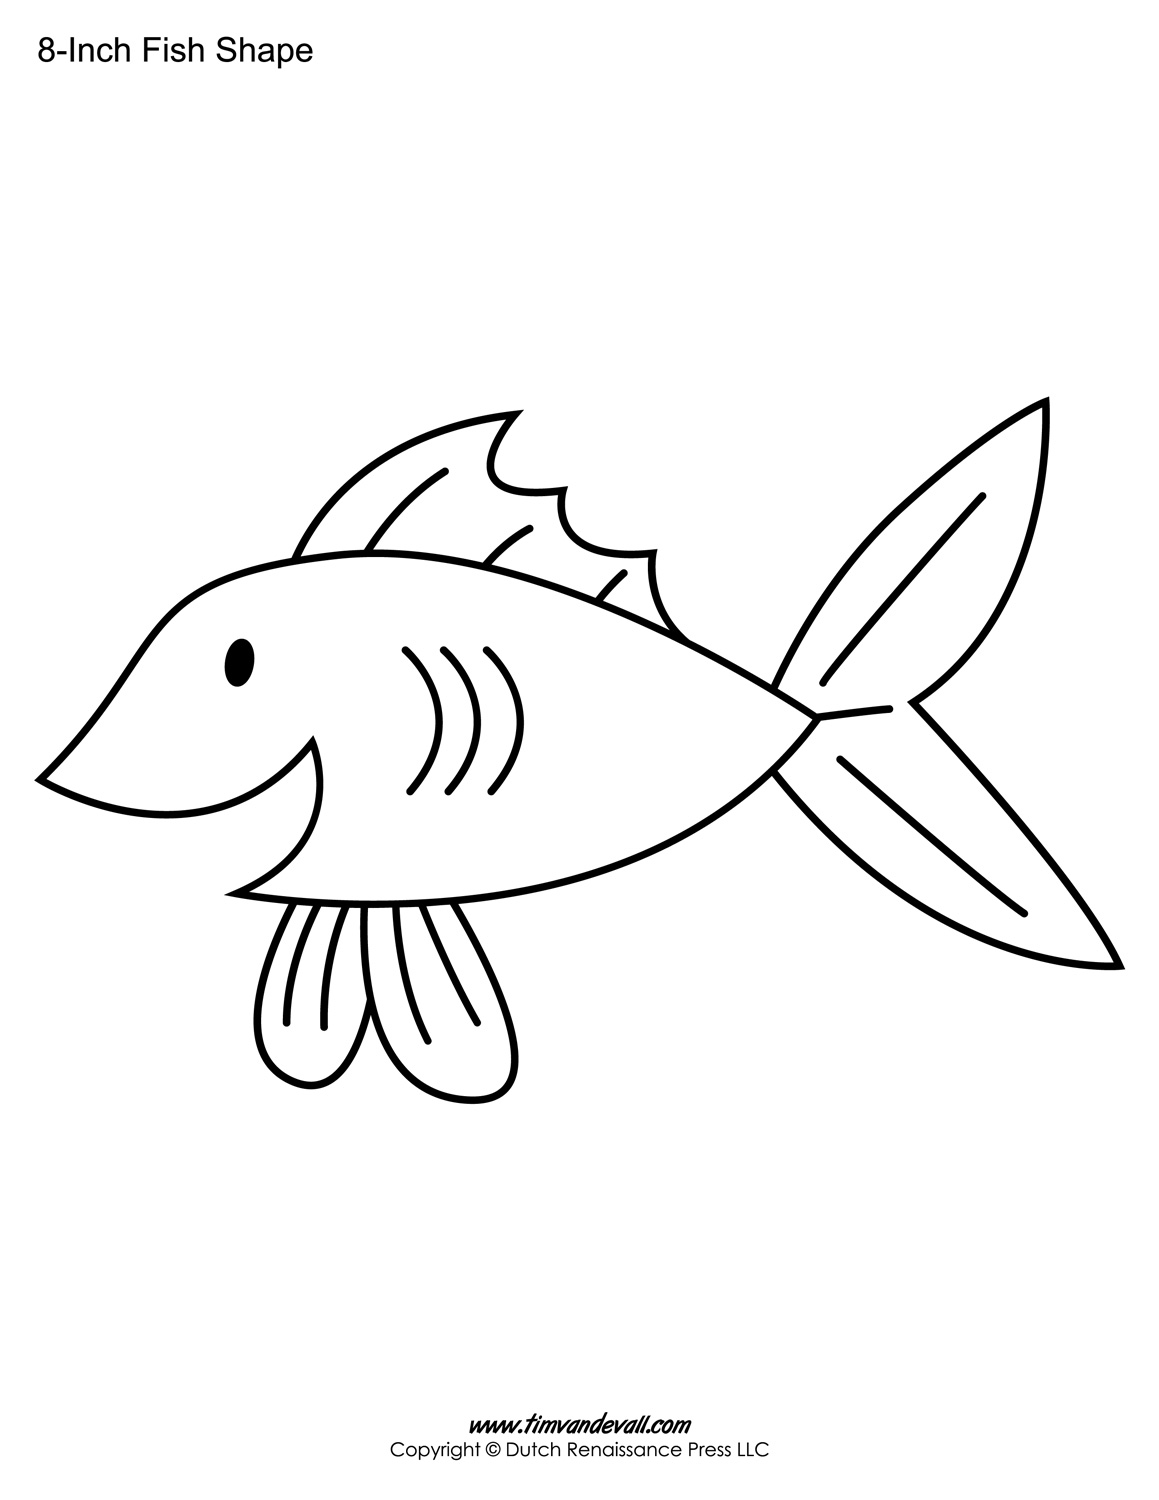 Printable Fish Templates For Kids